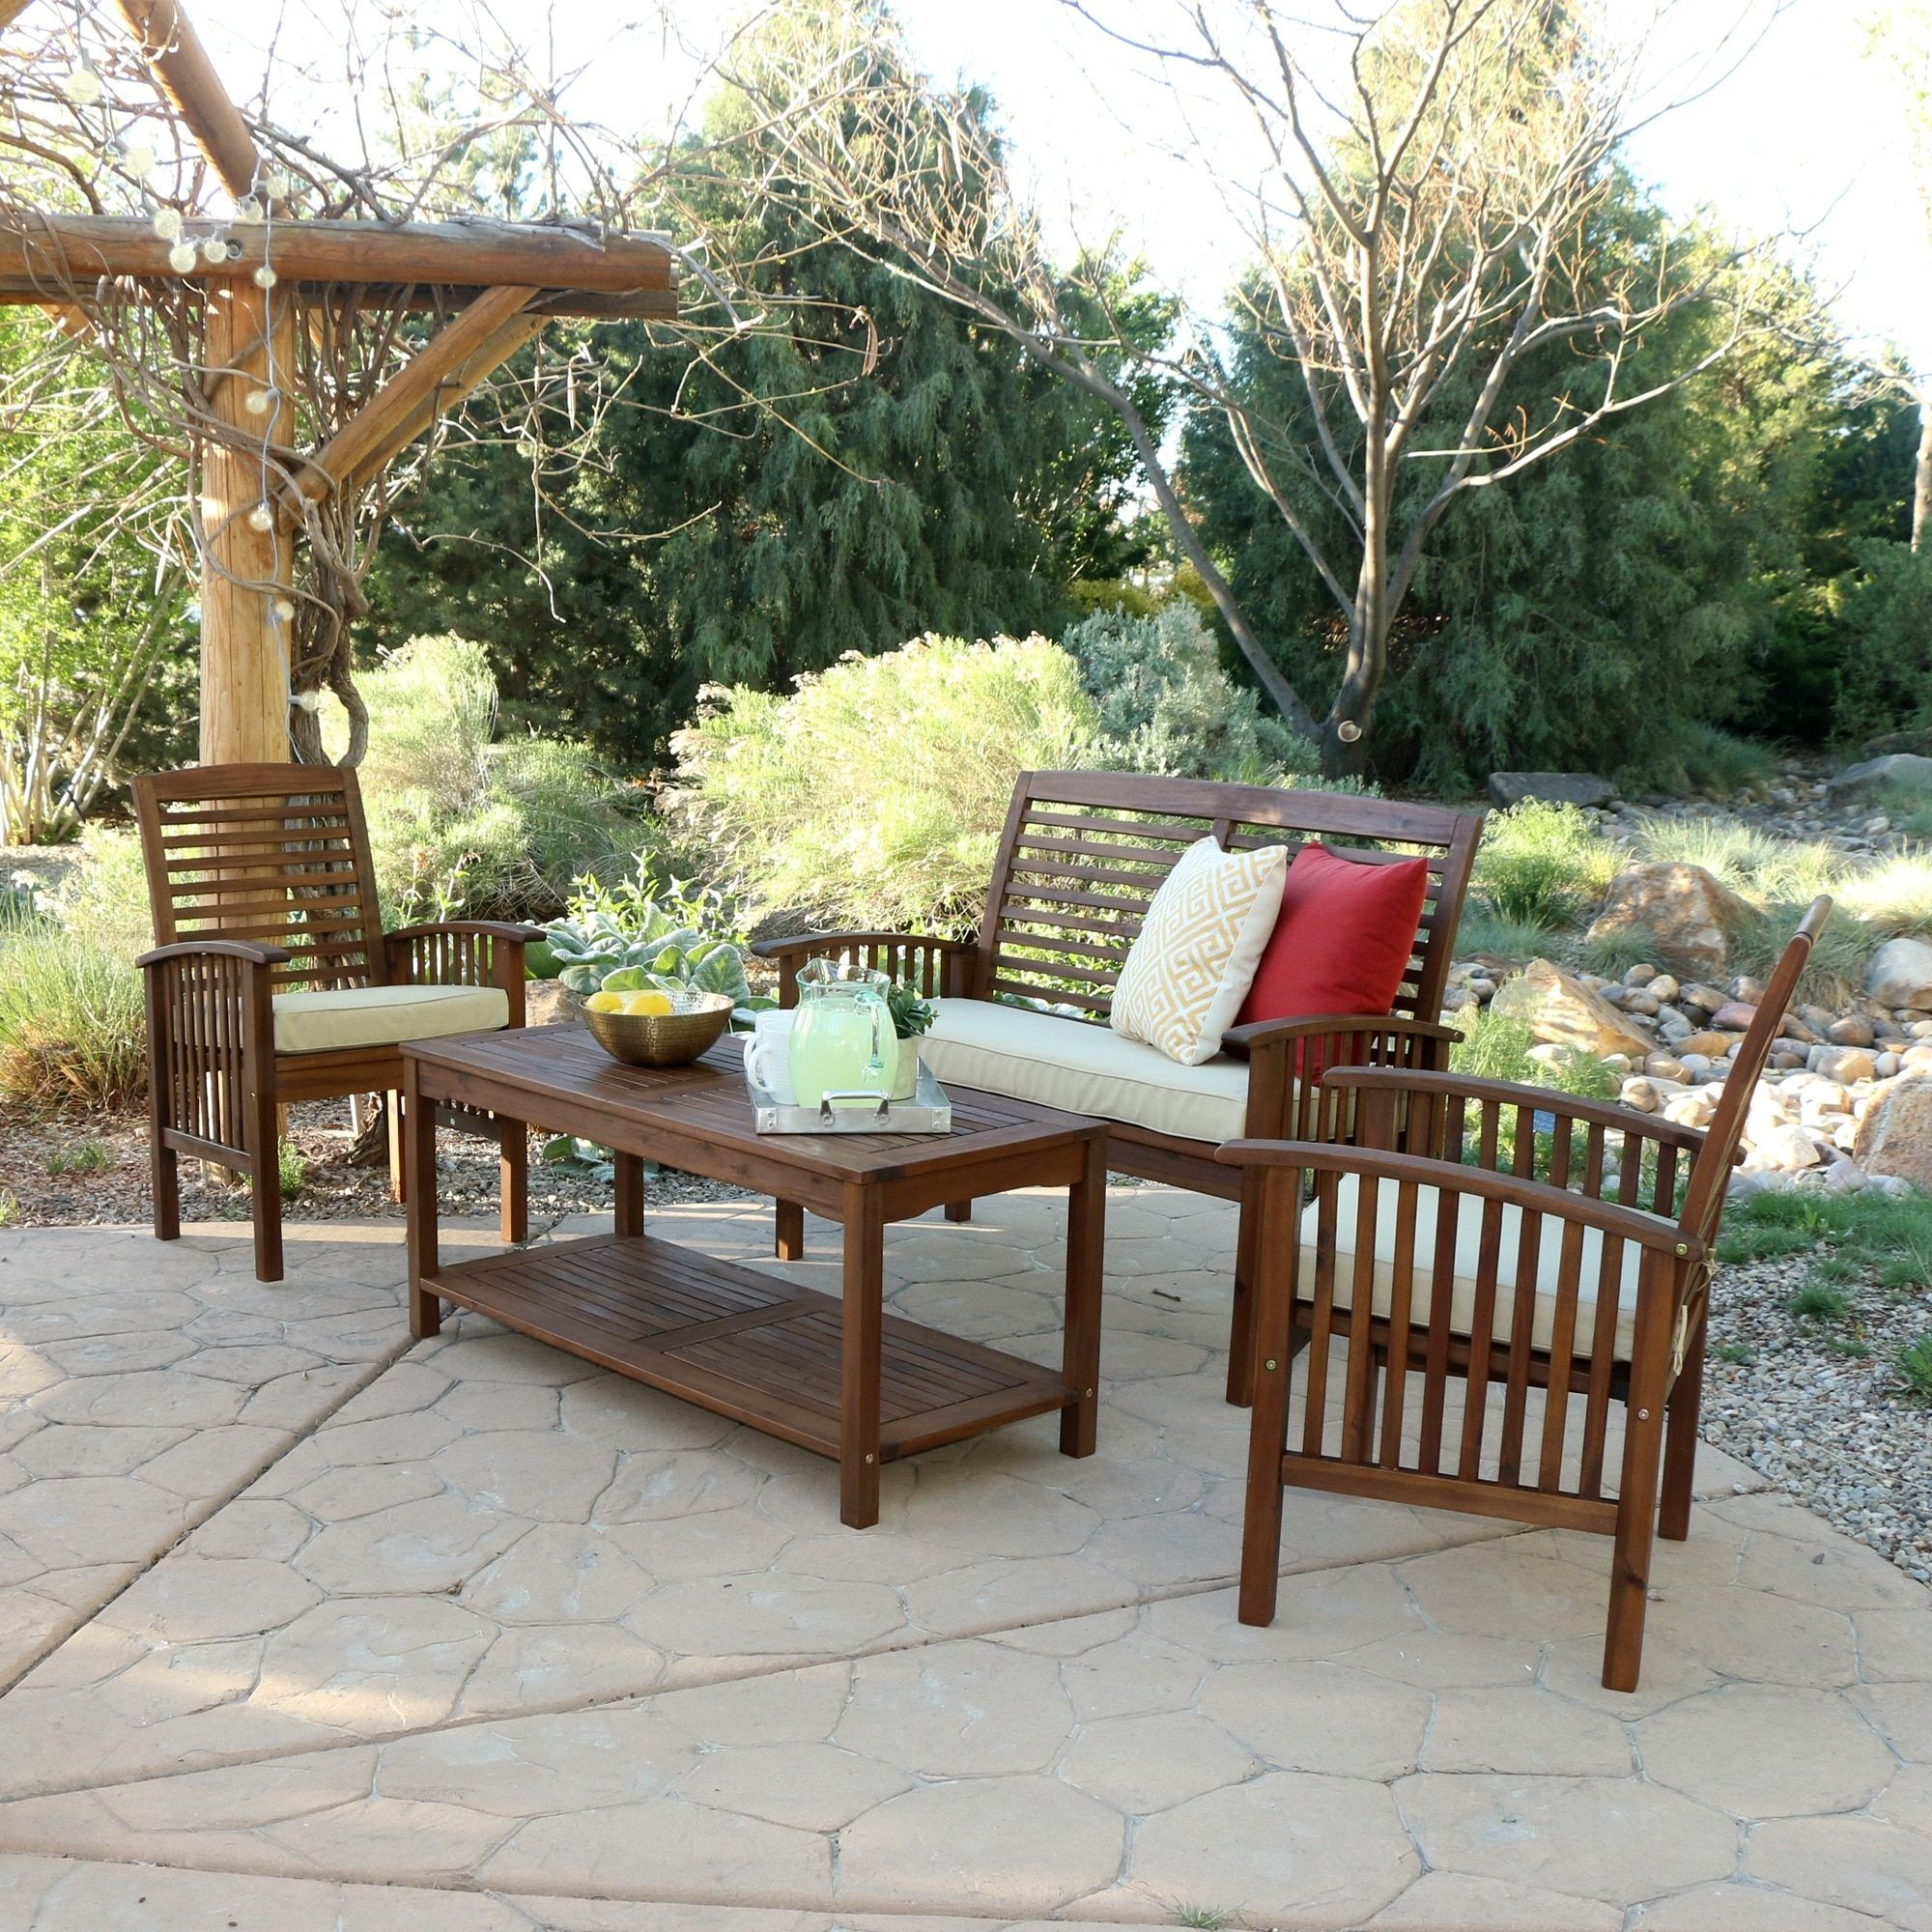 4 piece Acacia Wood Patio Conversation Set Brown Size 4 Piece